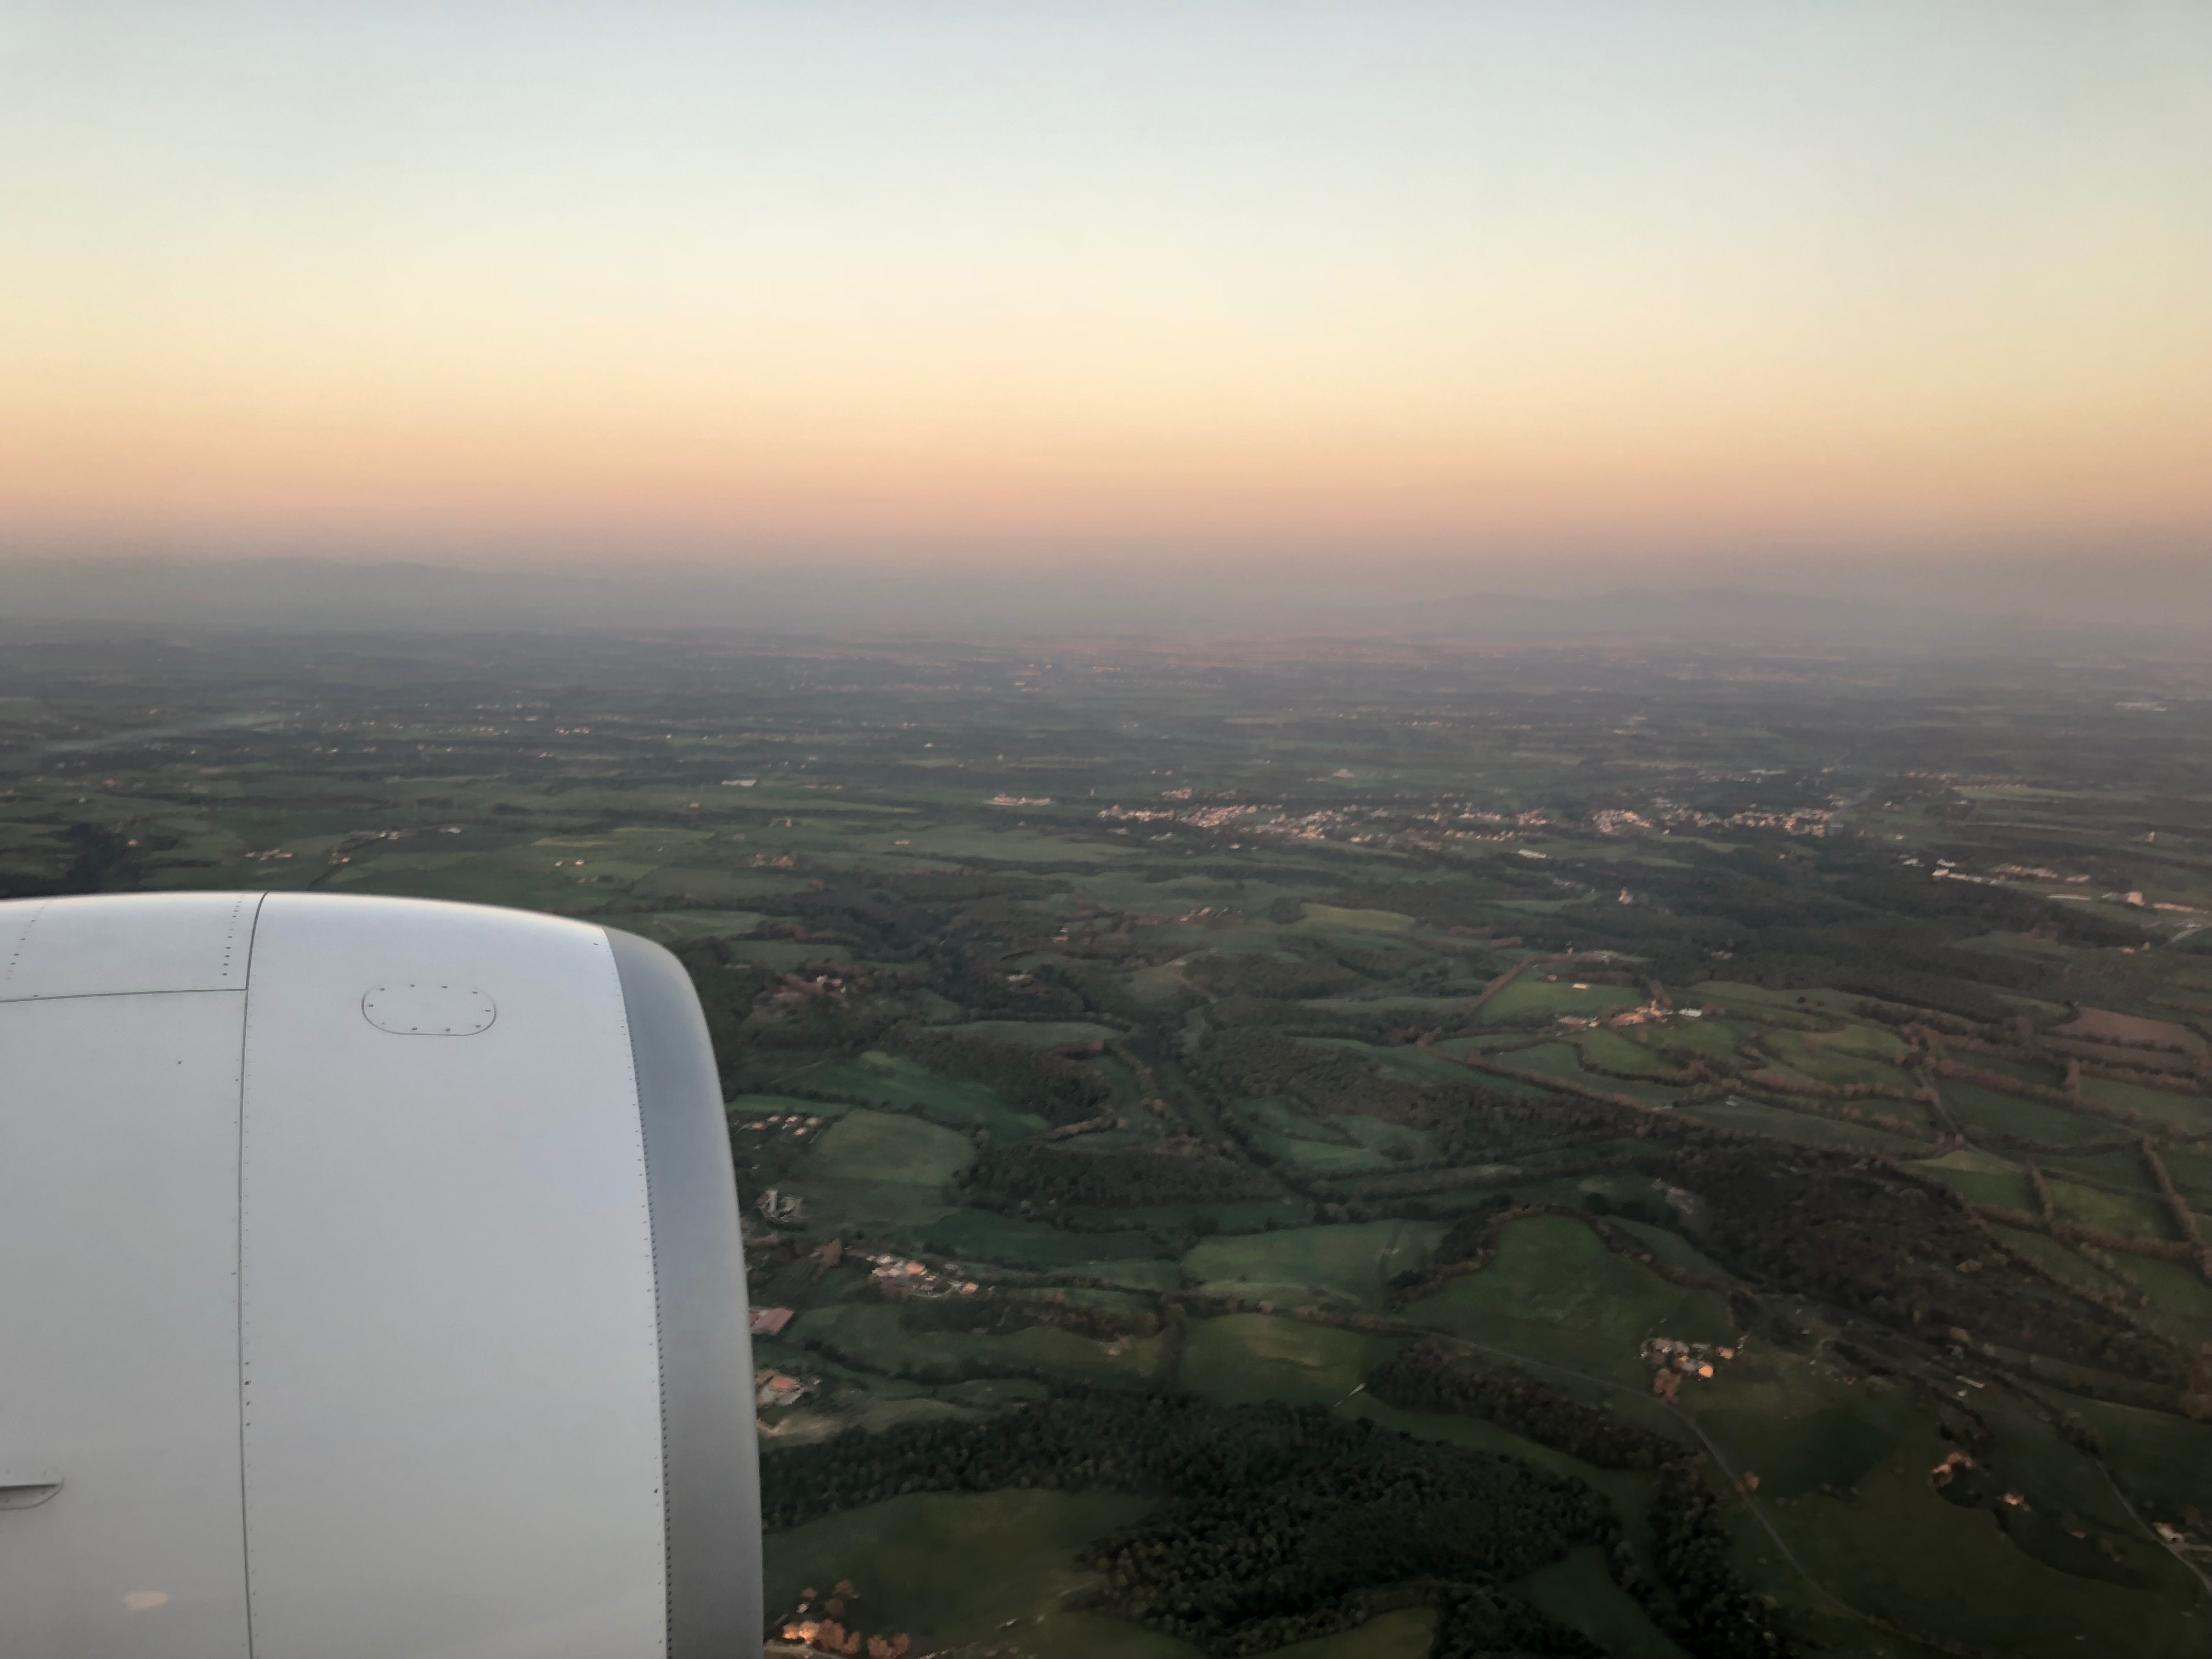 Flying into Rome at Sunset, Overwing View